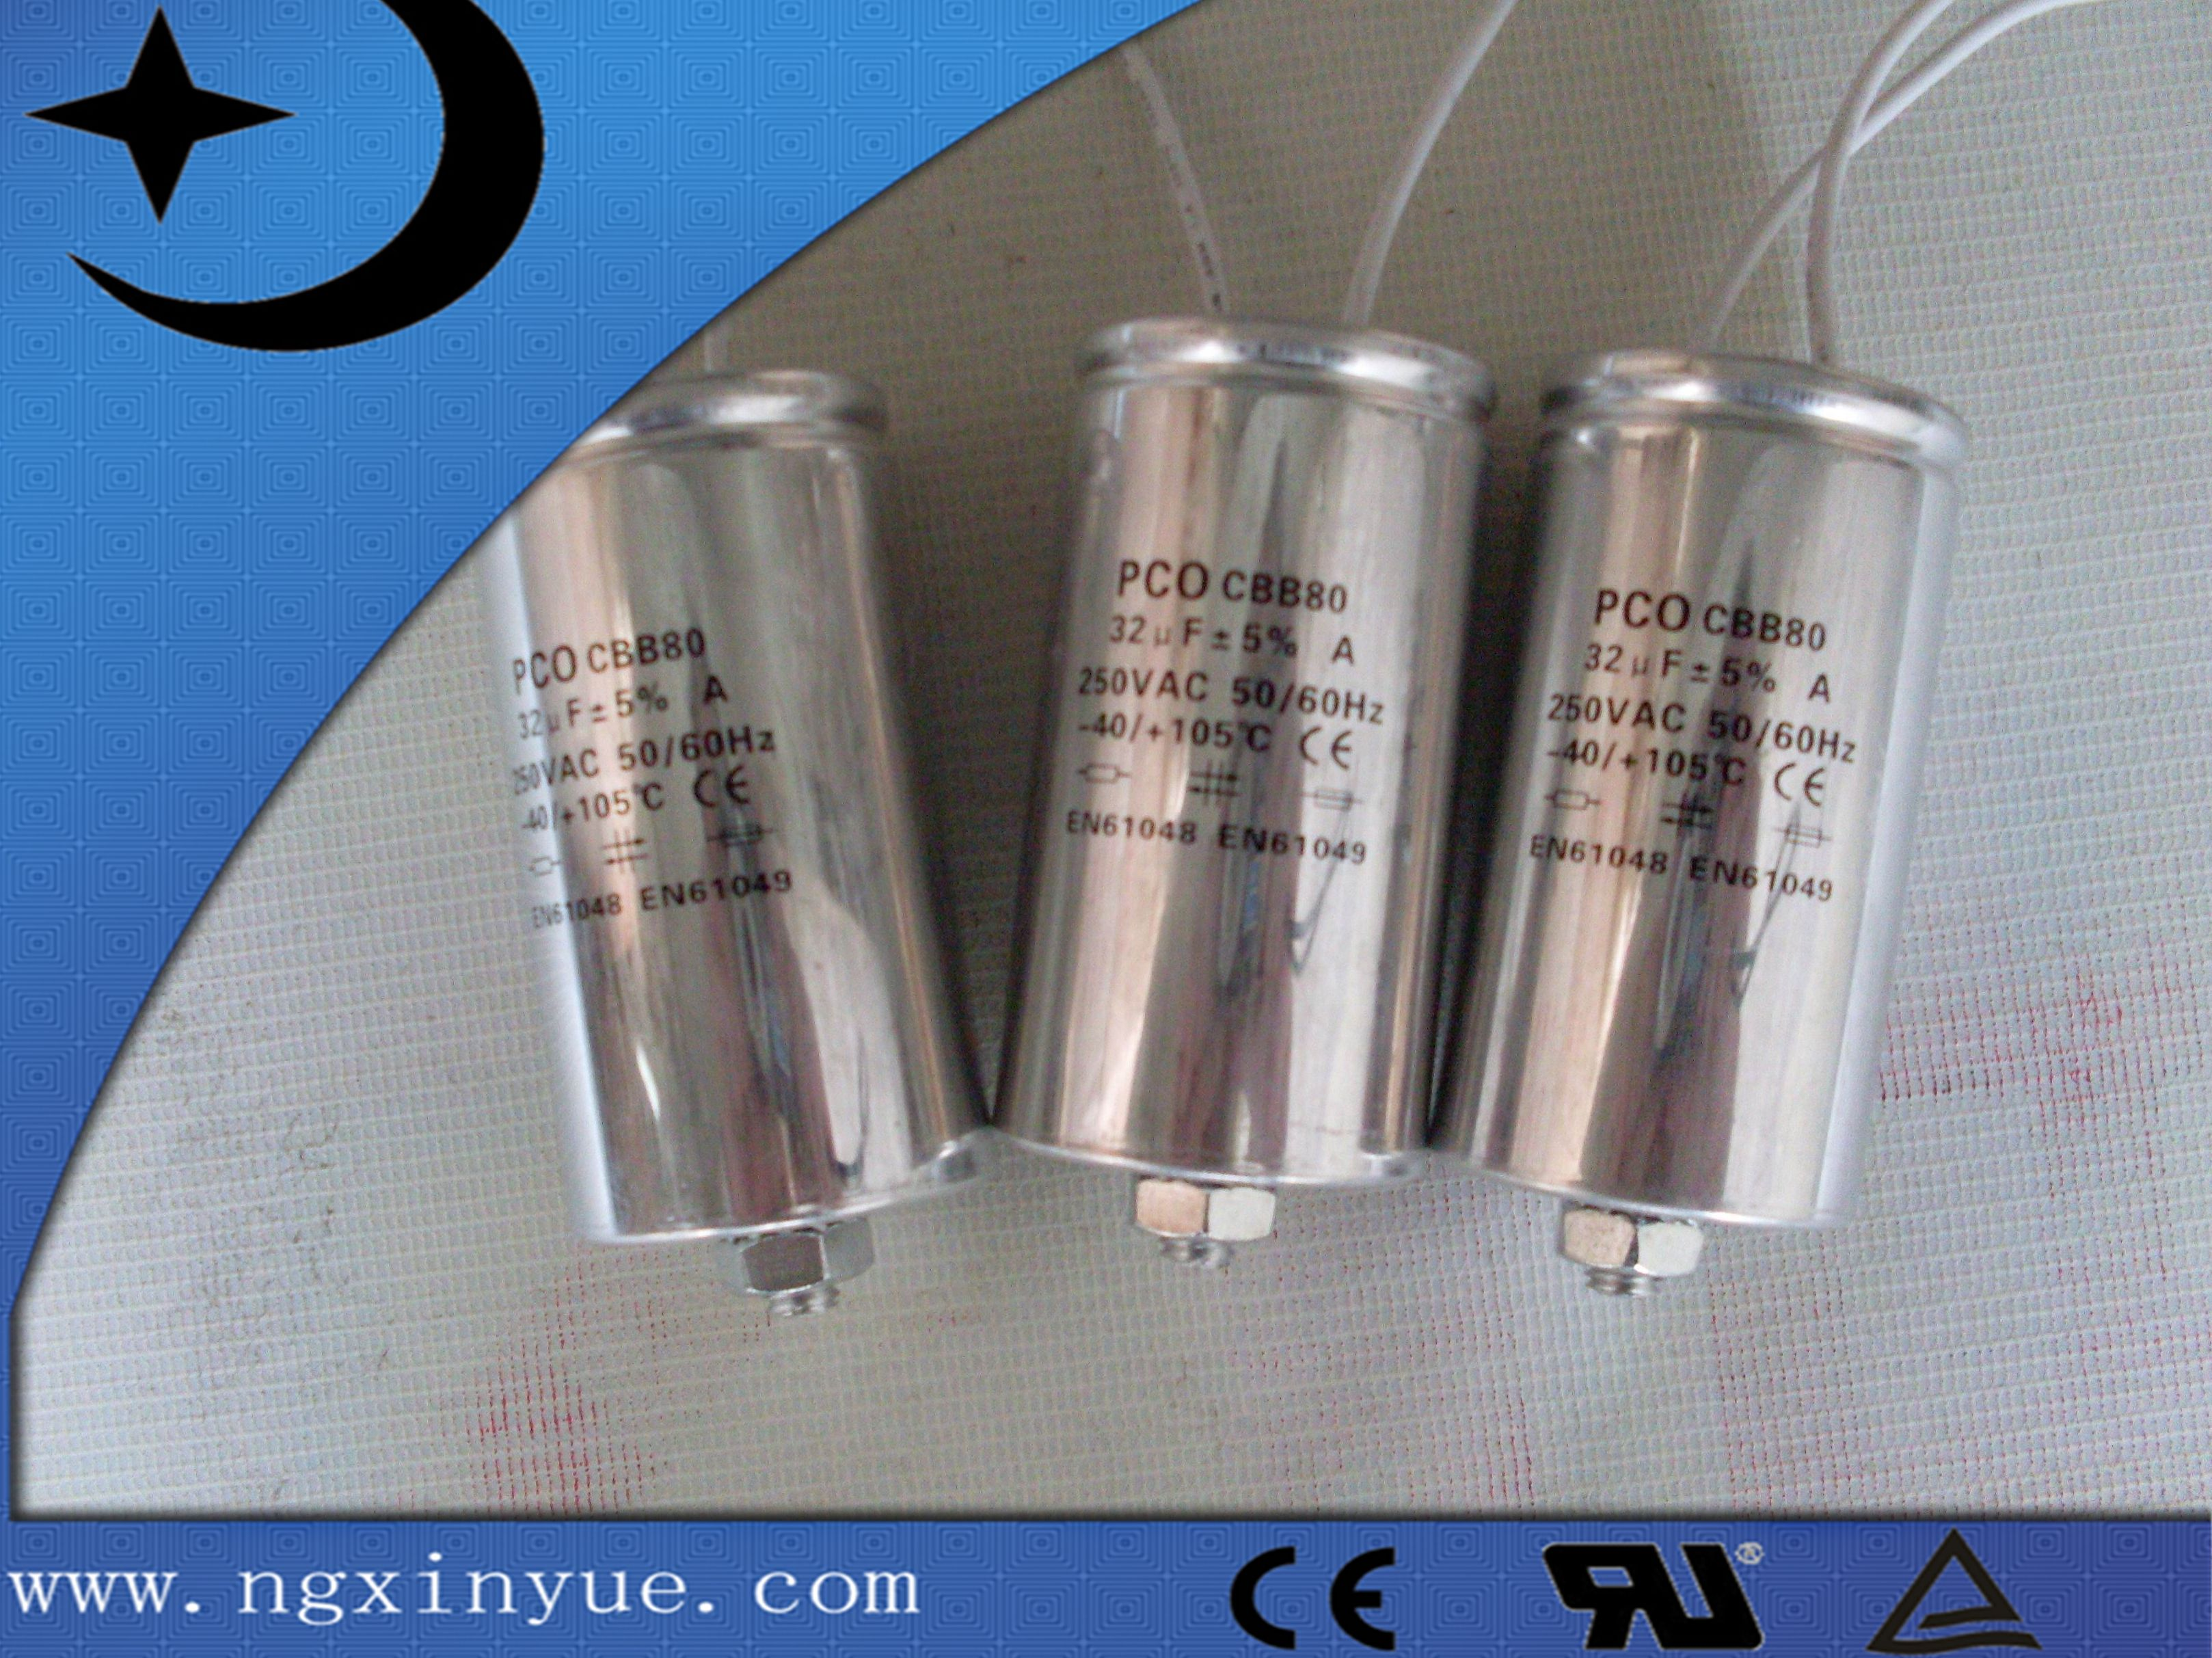 Cbb60 Capacitors Takes Heavy Edge Metallized Al Zn Pp Film Or Web Like Fuse Film As Dielectric Its Components Are Sealed Wit Capacitor Ac Capacitor Capacitors